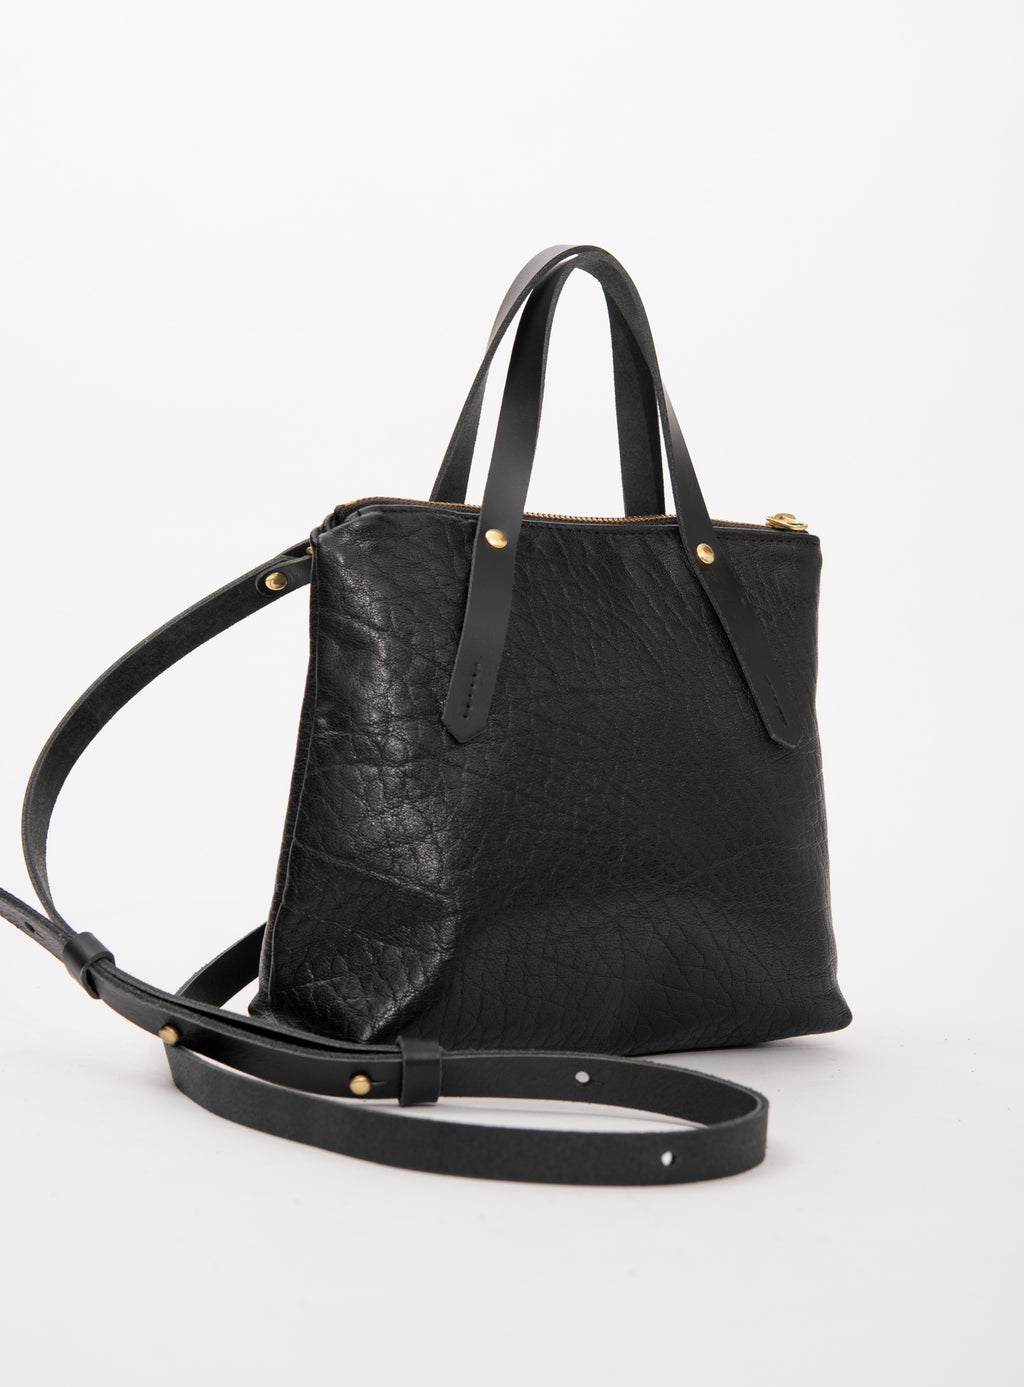 PAPINEAU leather handbag